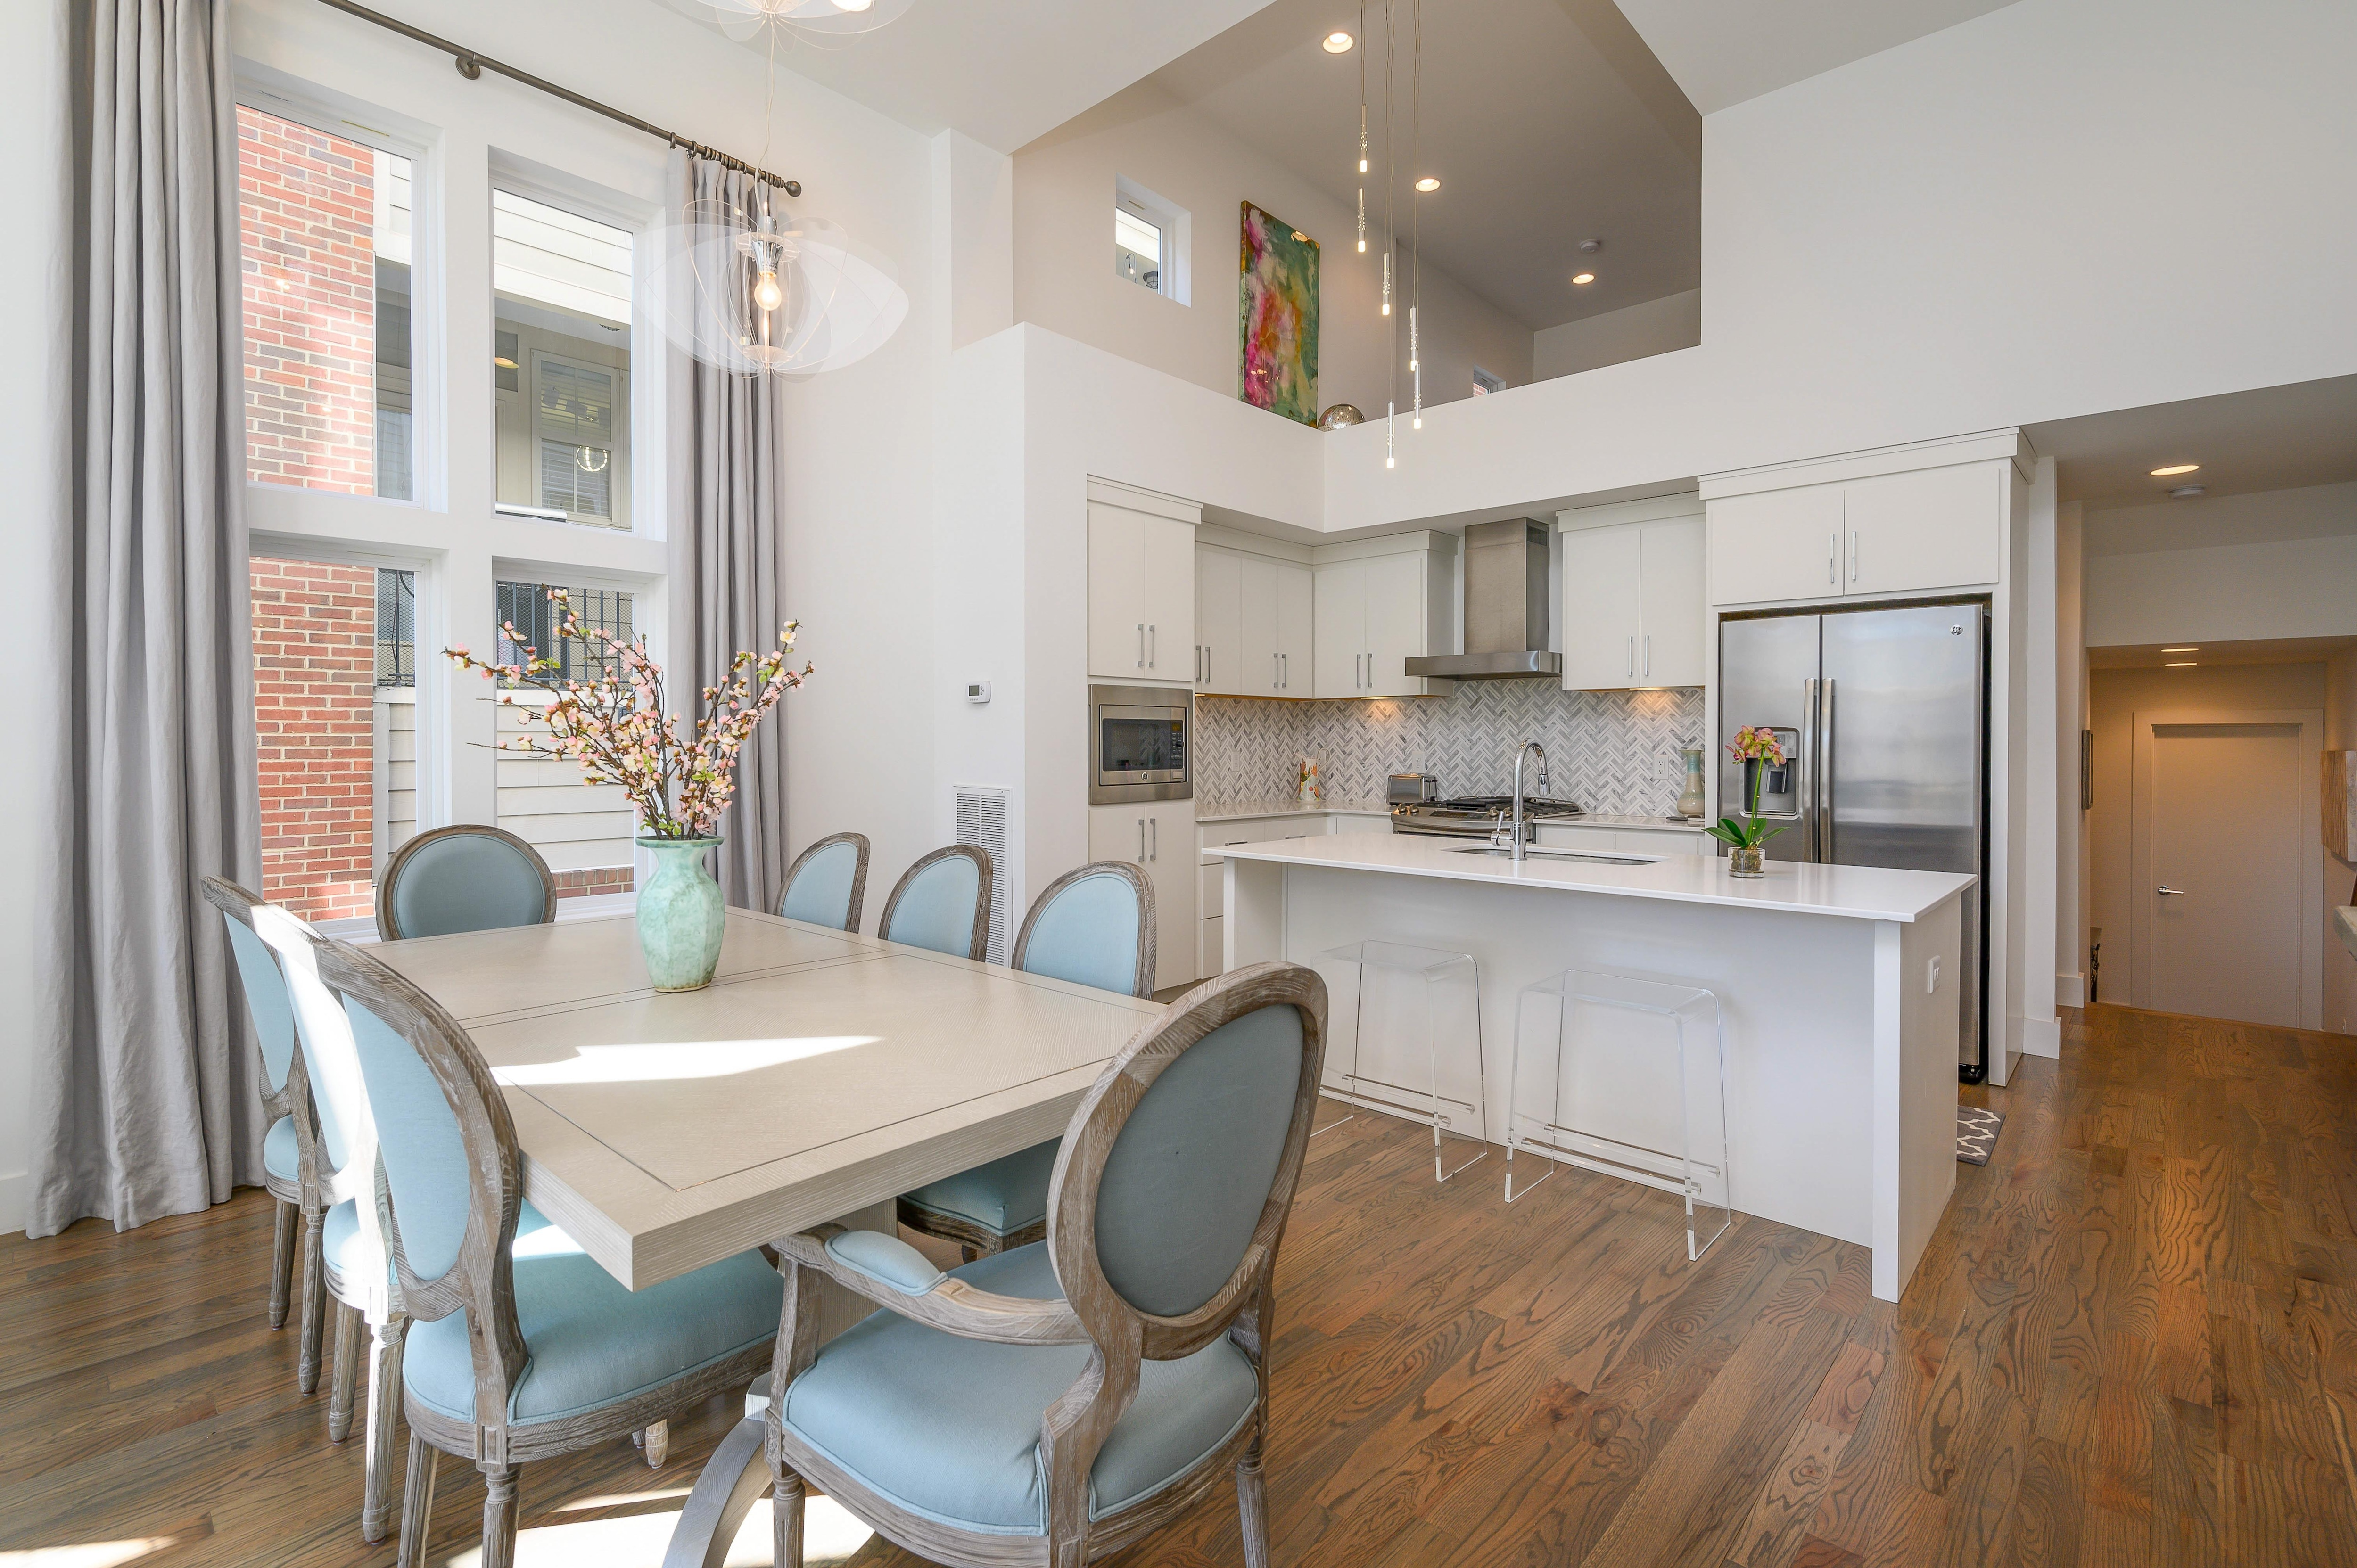 The open kitchen and dining area offers a great flow for entertaining.